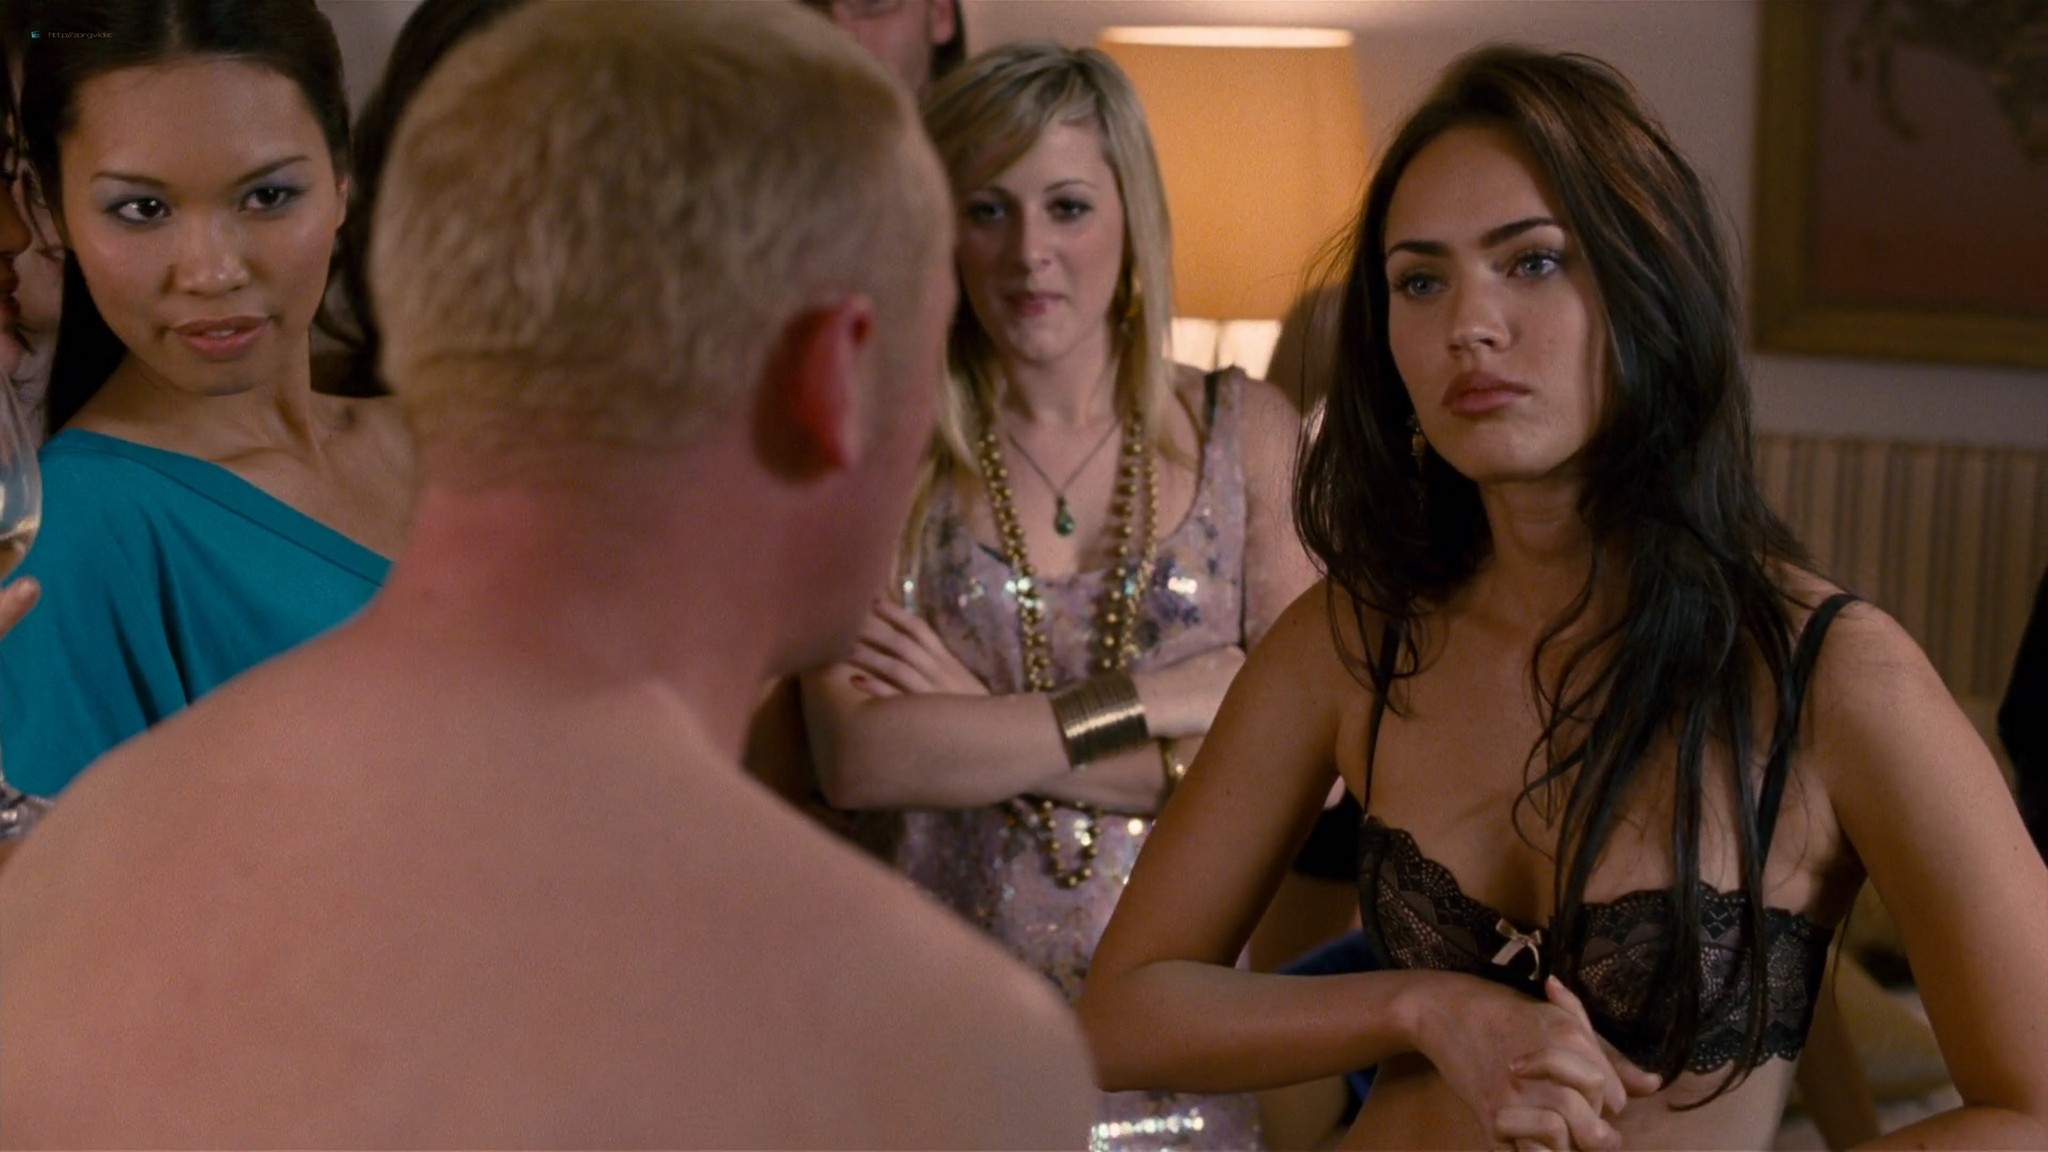 Megan Fox hot wet - How to Lose Friends and Alienate People (2008) HD 1080p BluRay (4)